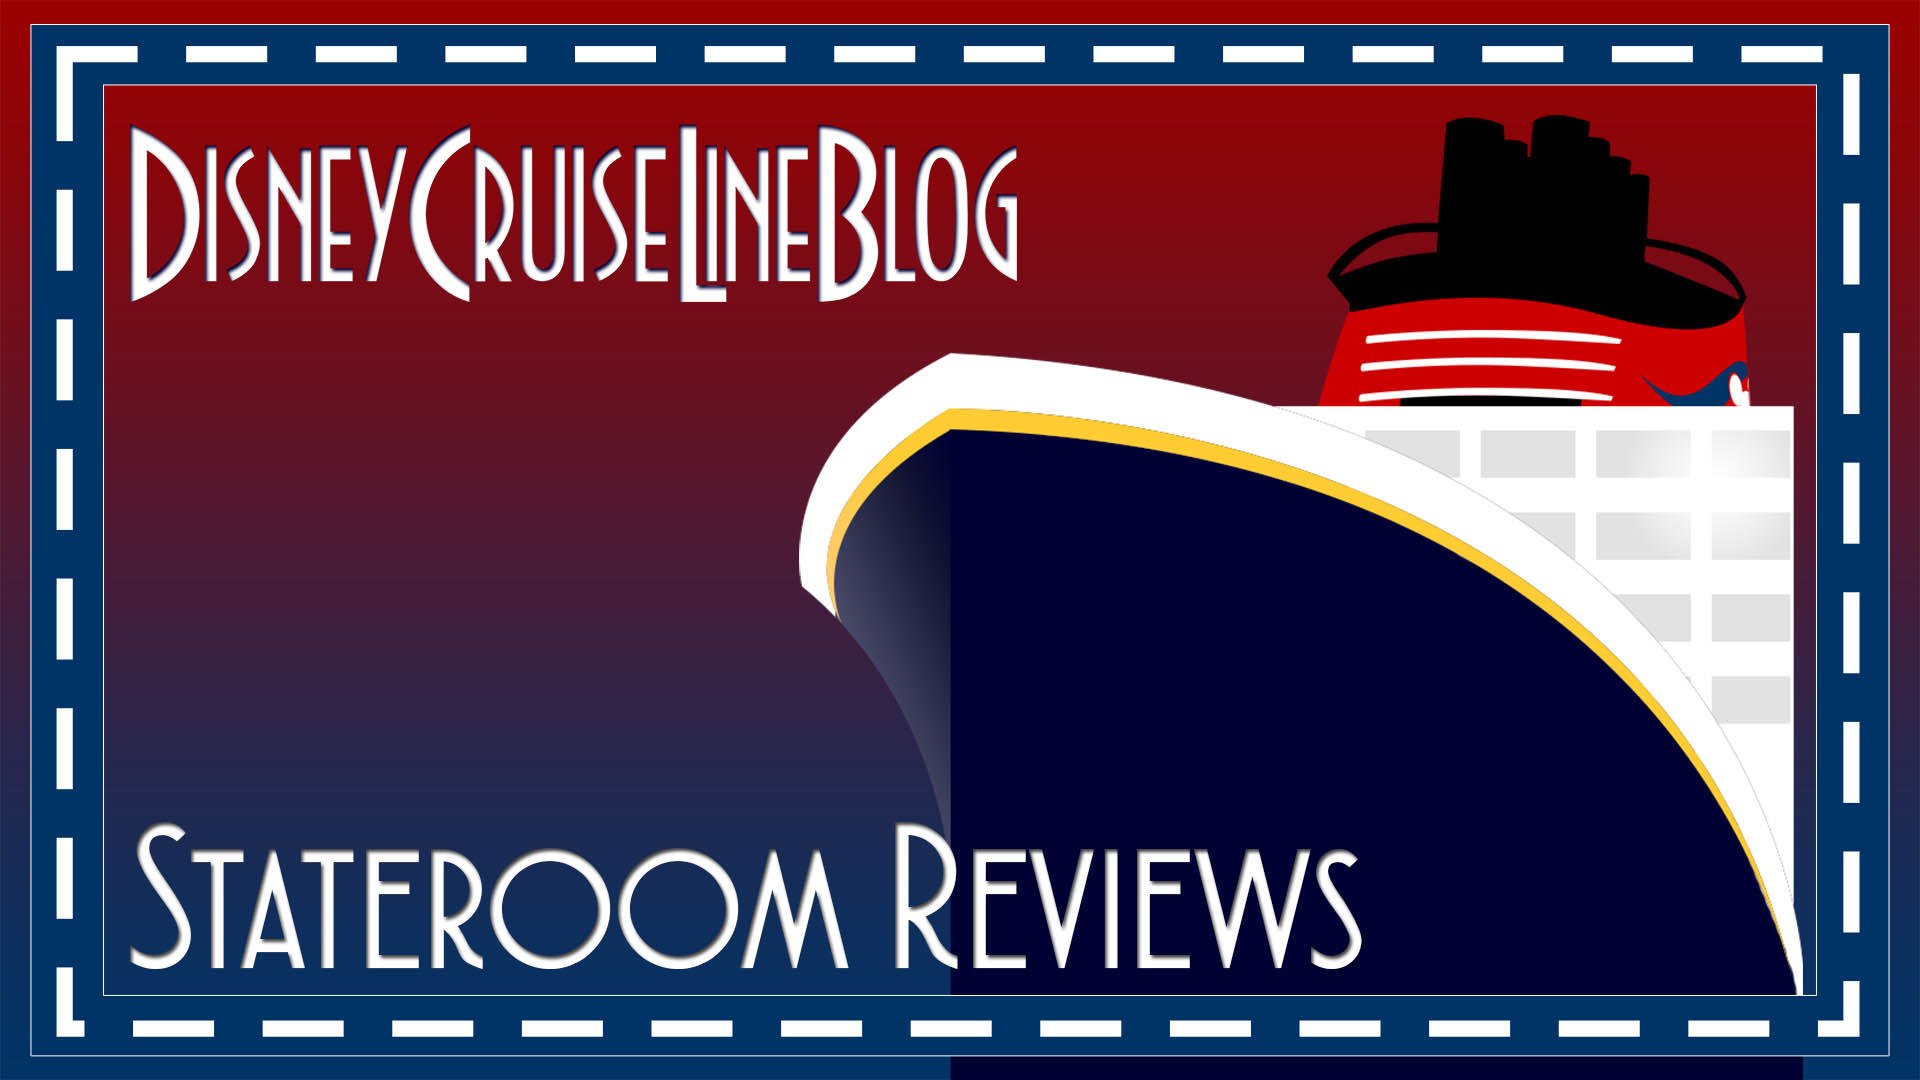 DCLBlog Stateroom Reviews